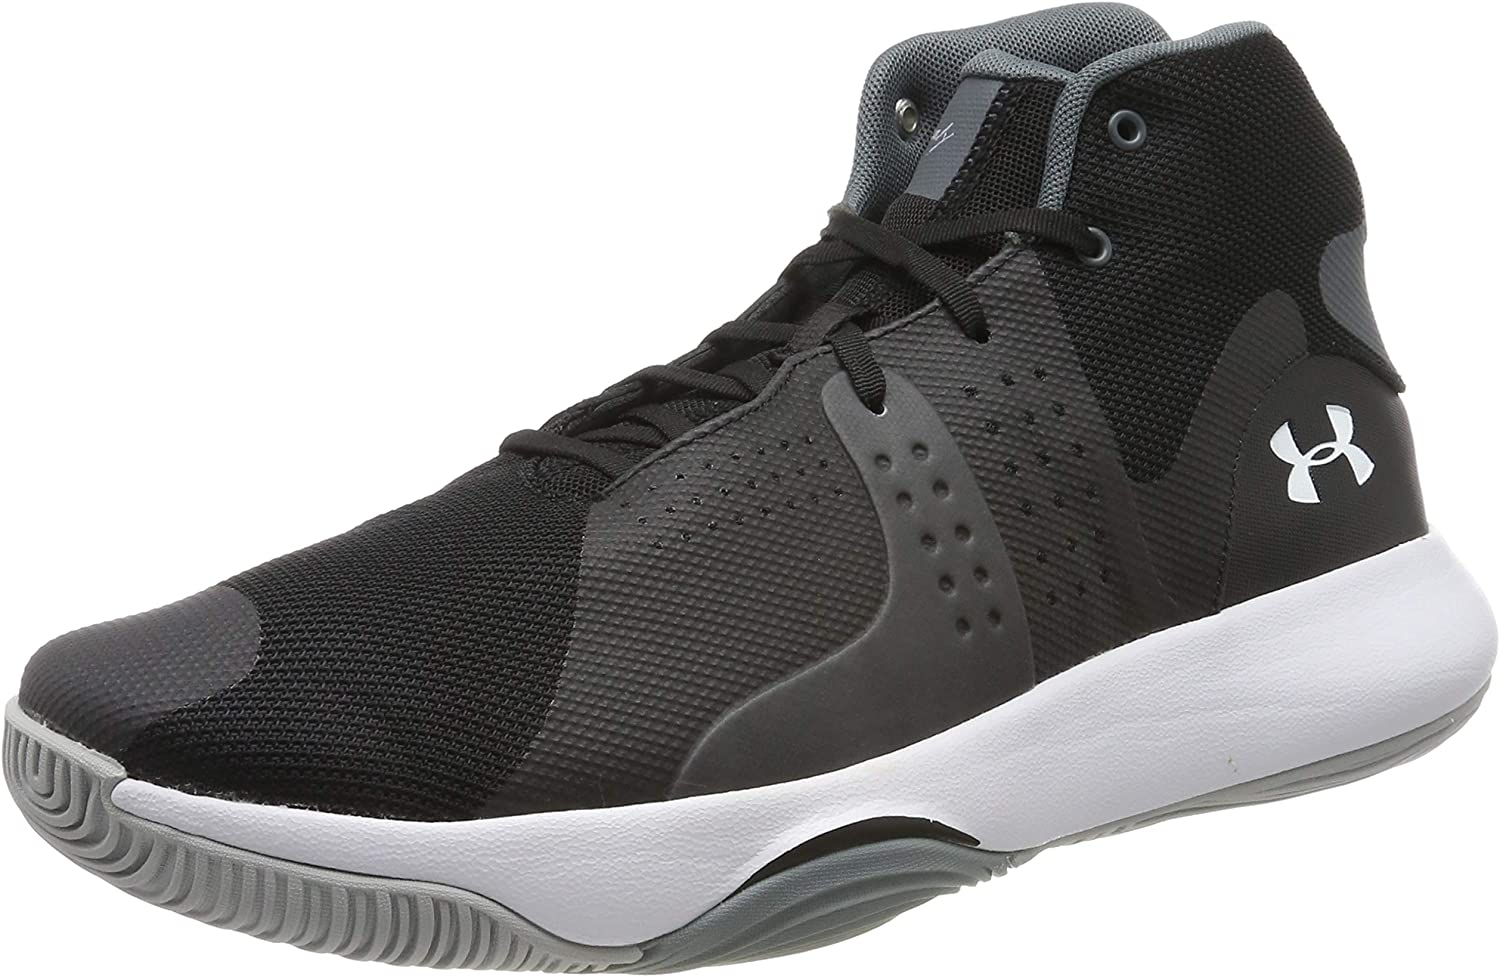 Anomaly Basketball Shoes